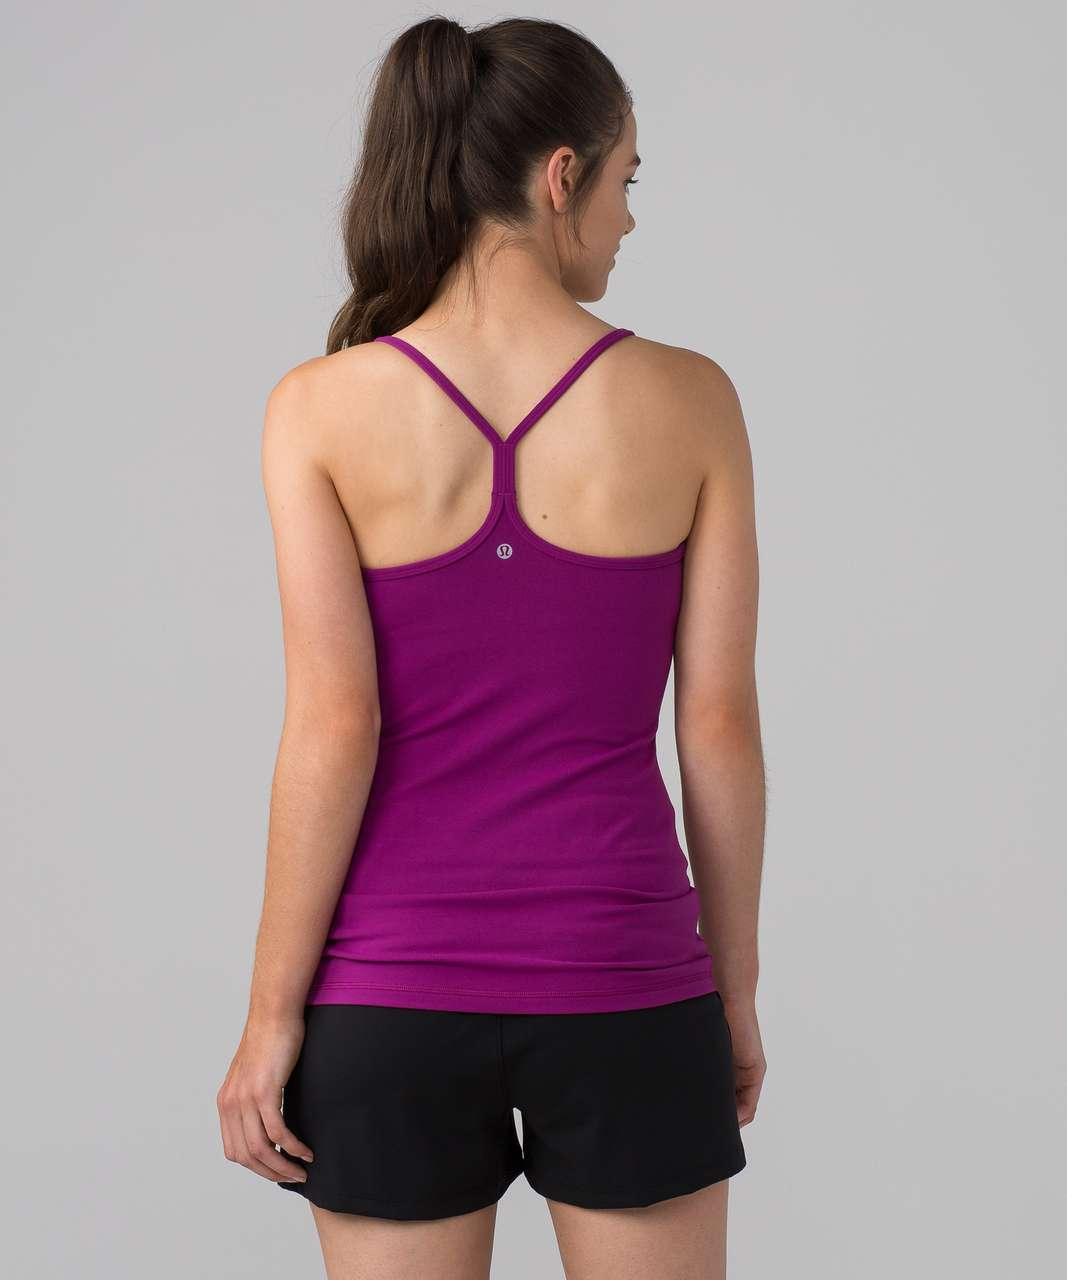 Lululemon Power Y Tank - Regal Plum